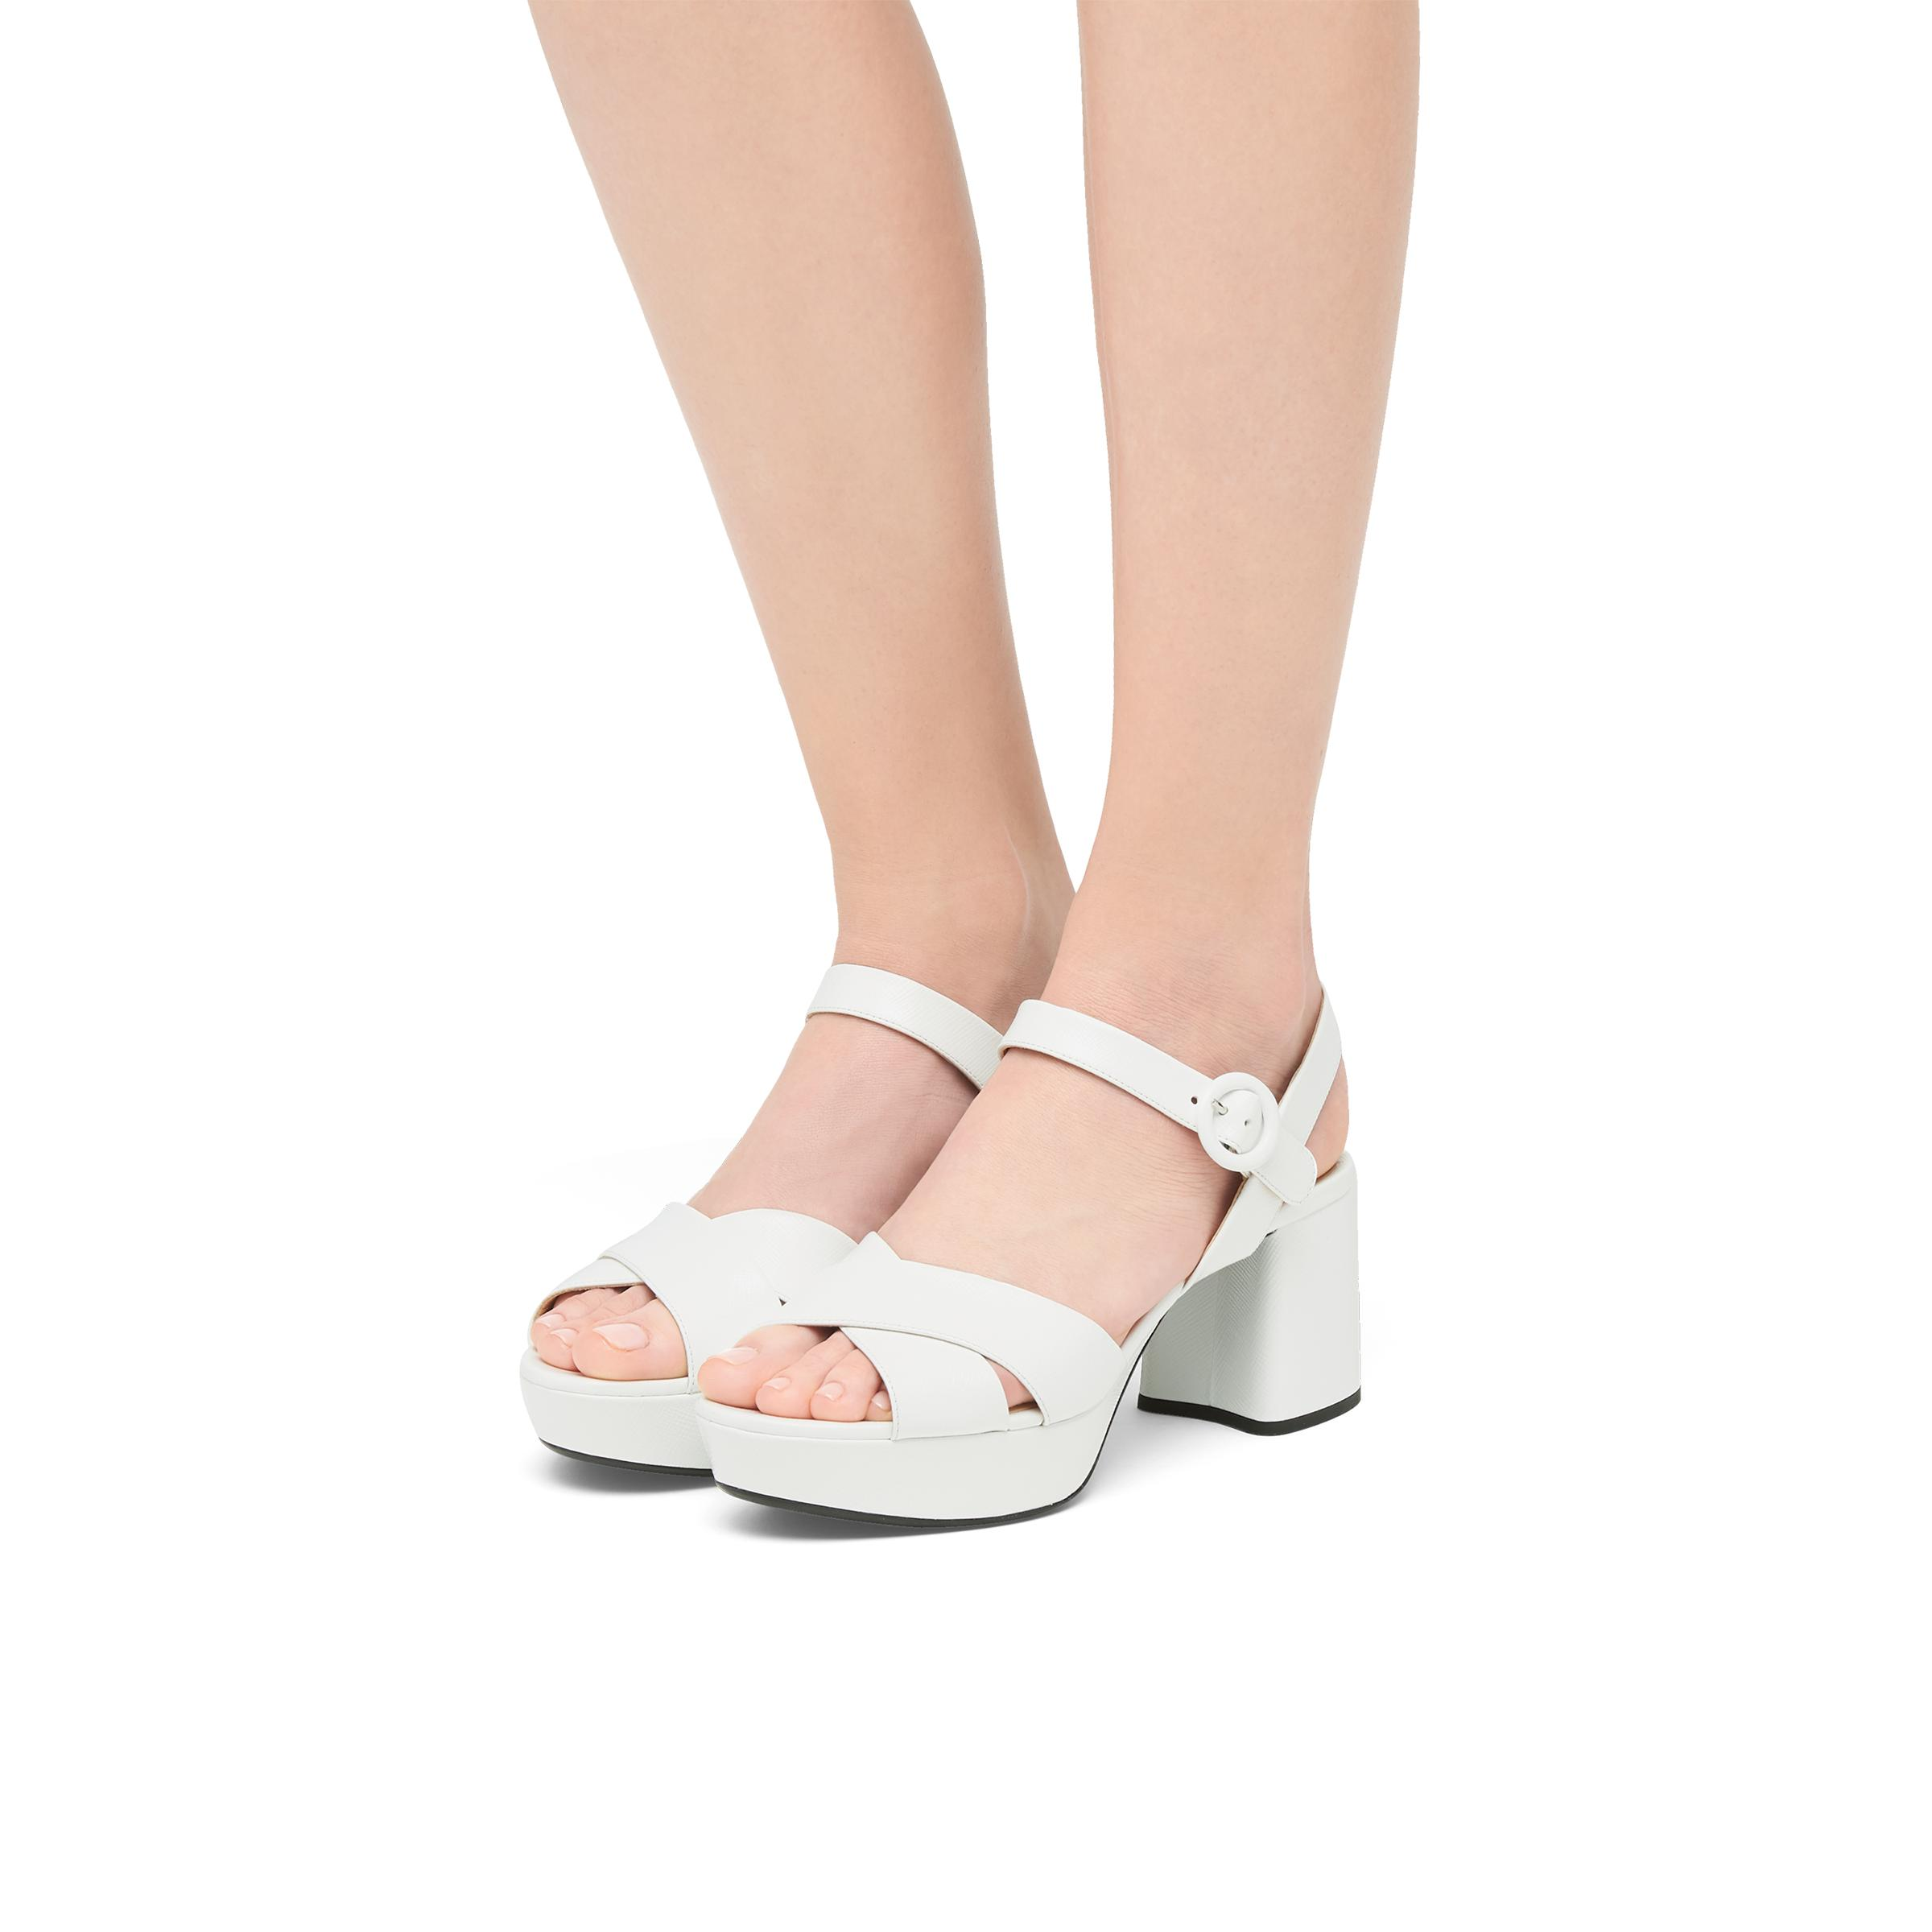 Patent Leather Sandals Women White 4